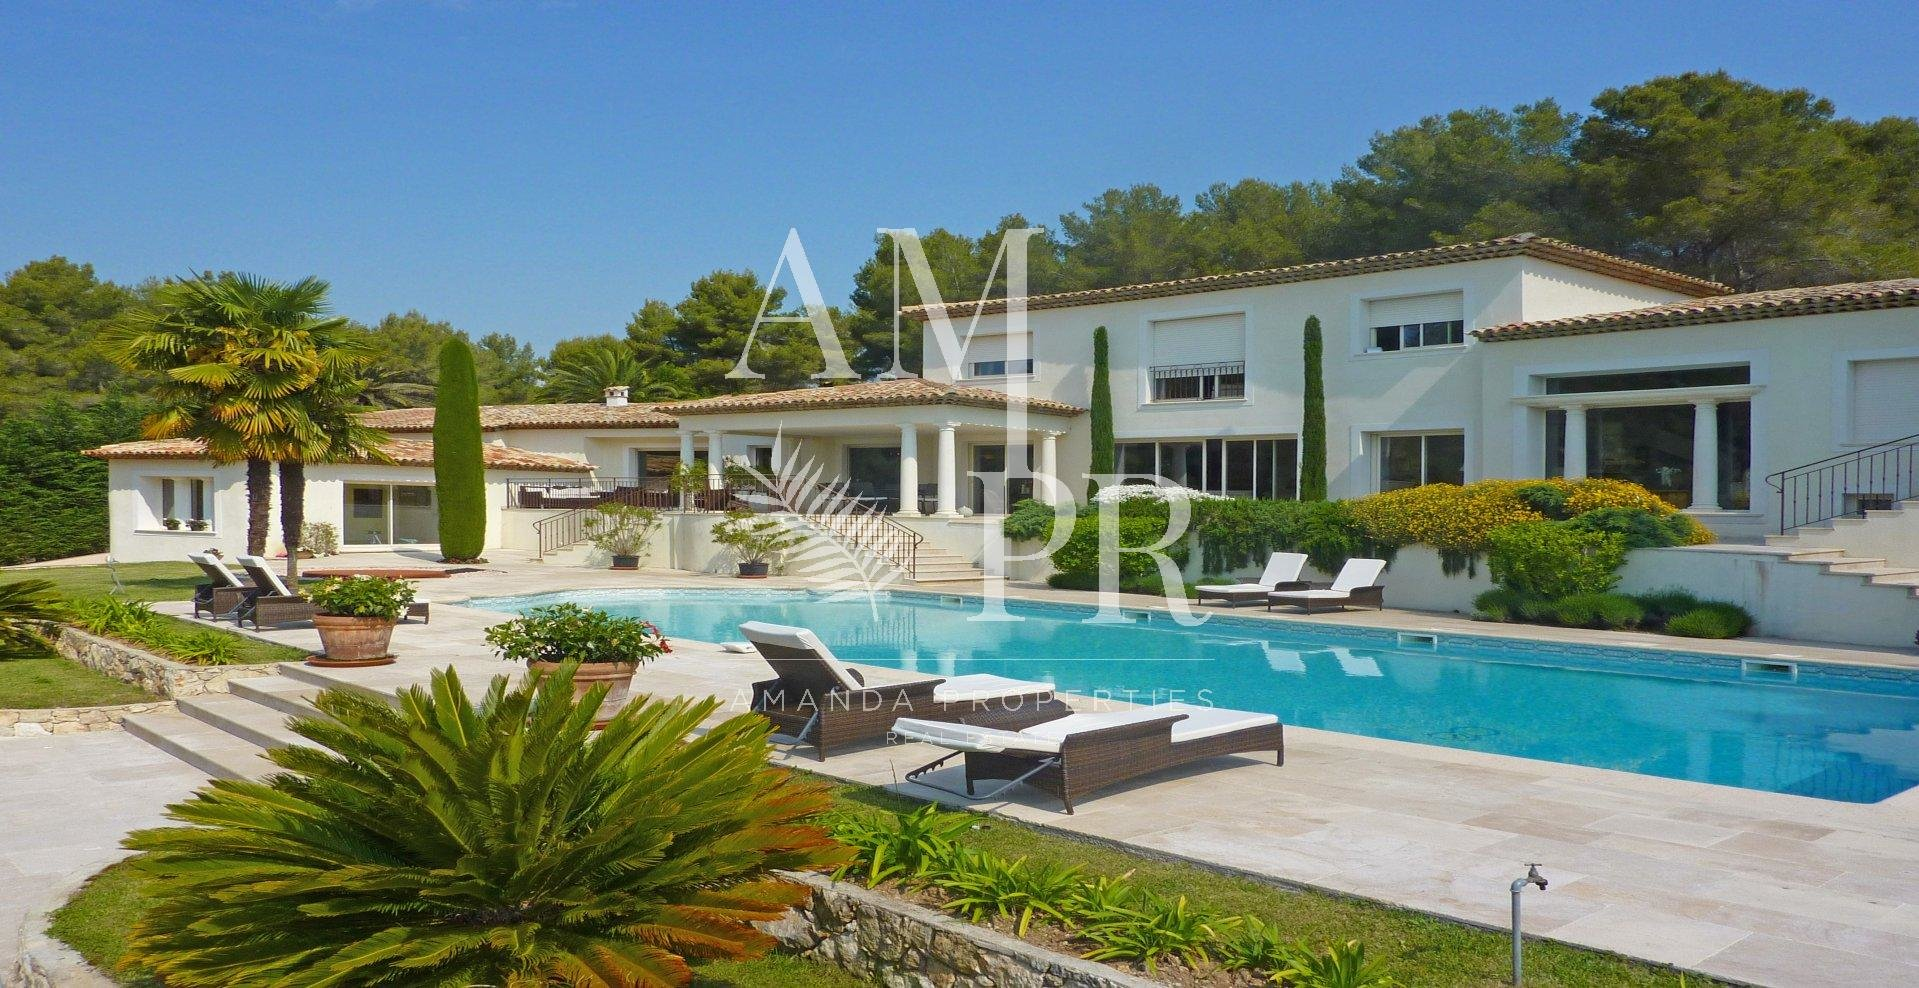 Somptuous modern property : price drop of Euro 500000